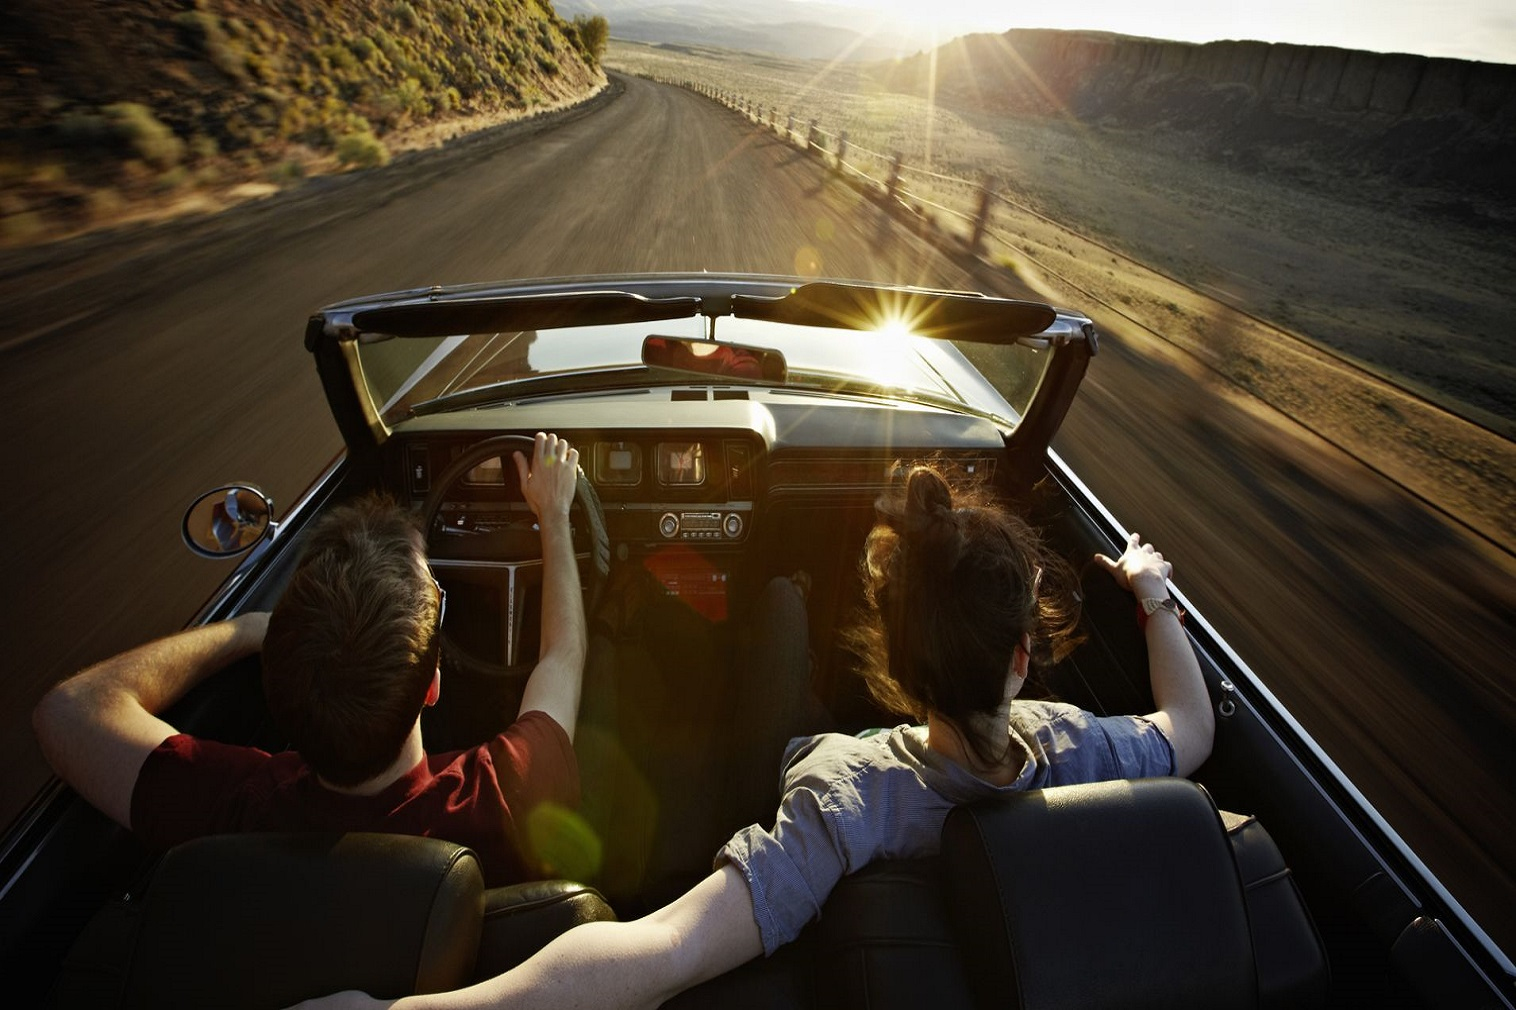 Many in the US are using a road trip as their break from everyday life, with most participants saying they would use the trip to escape to the mountains (35%)andjust 12% stating they wanted to visit the city.